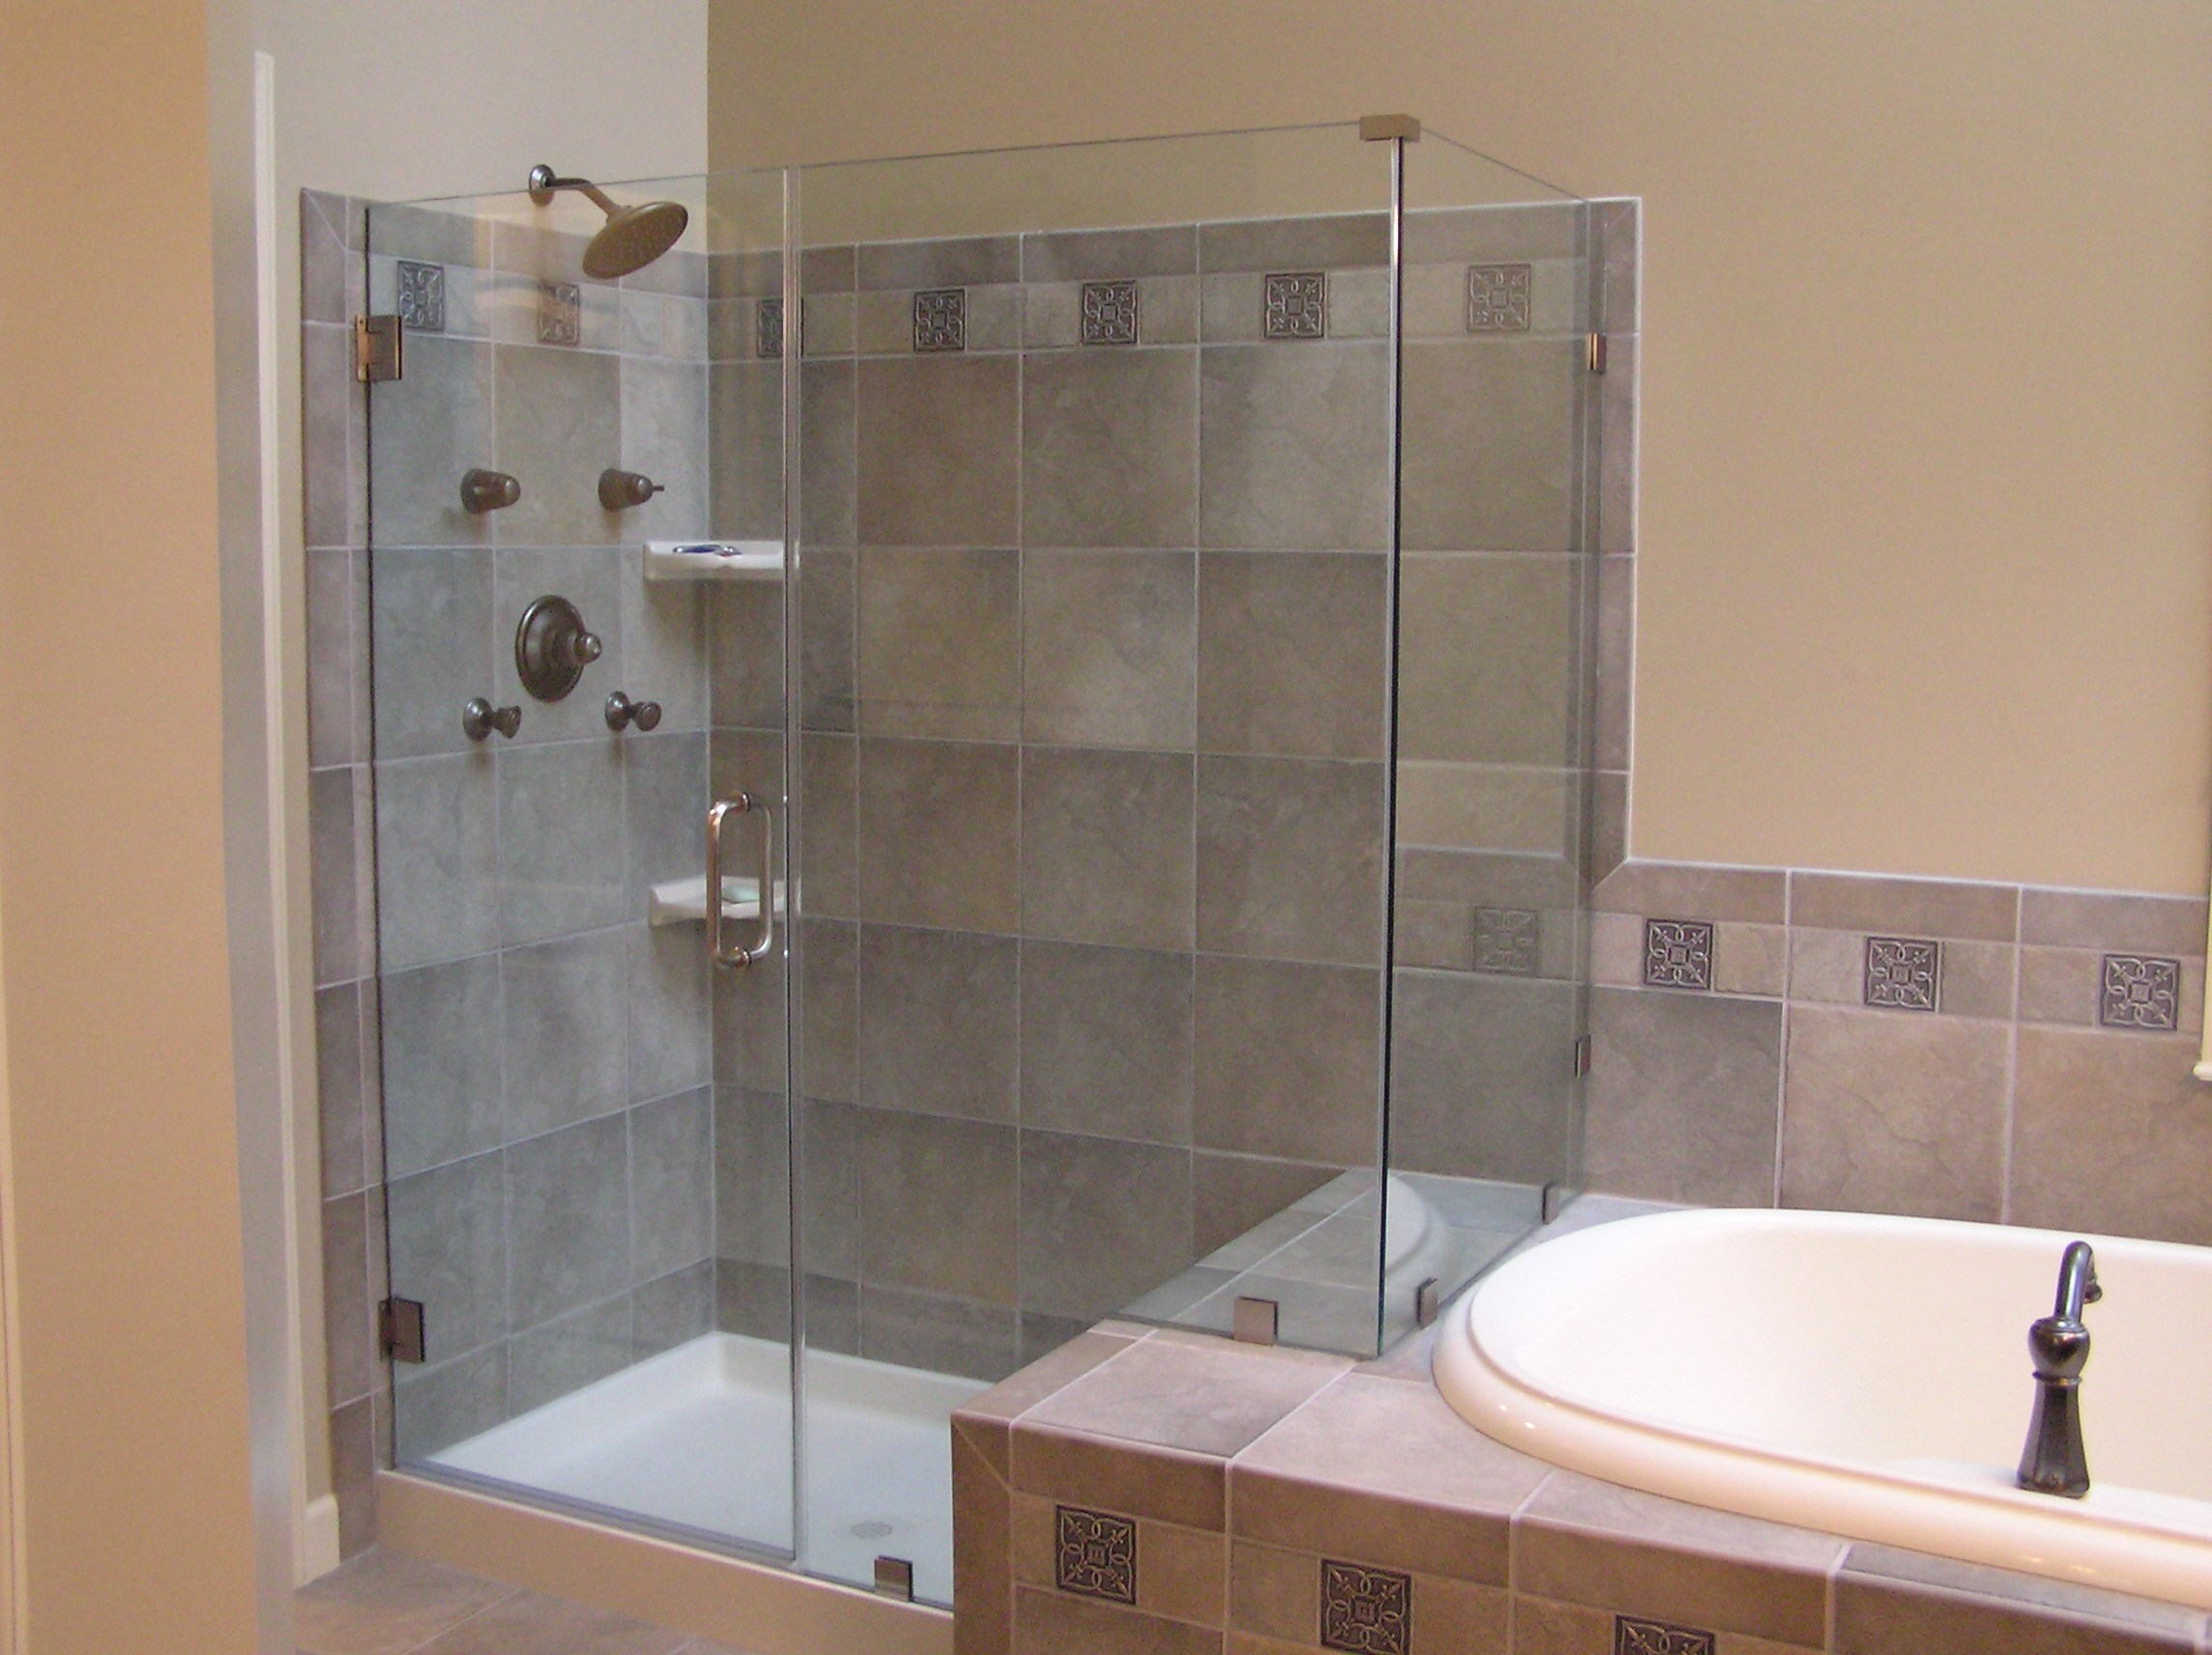 Affordable Bathroom Tile Tiling A Small Bathroom Ideas Bathroom Small Ideas With Shower